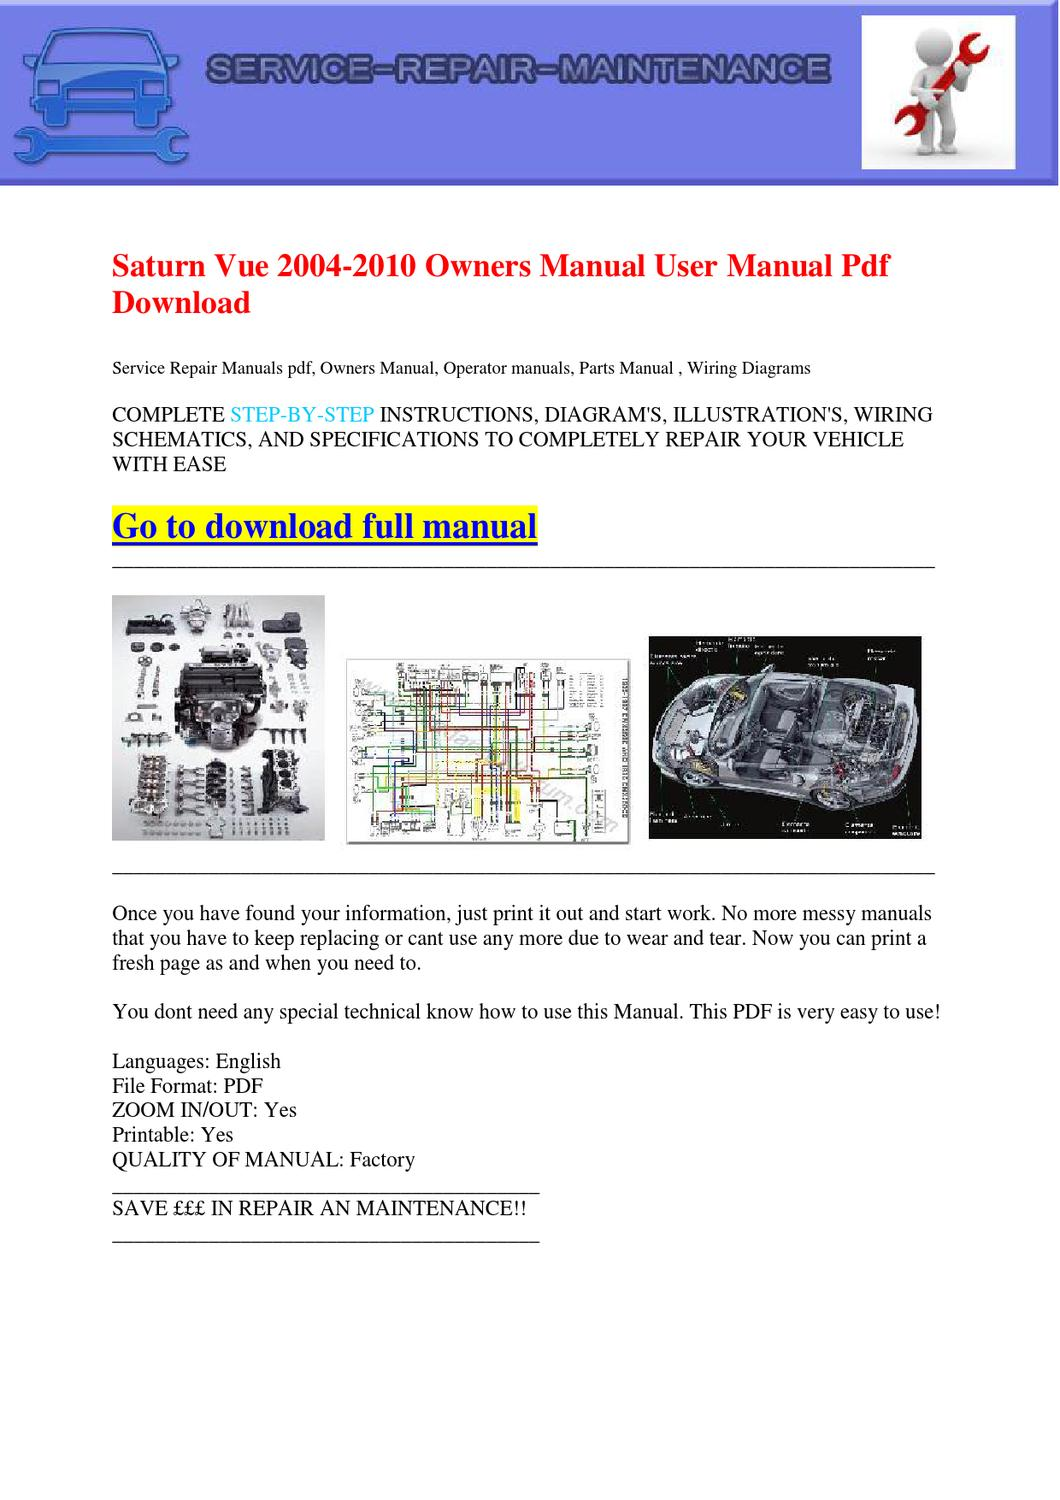 Saturn Vue 2004 2010 Owners Manual User Pdf Download By Repair Diagrams Dernis Castan Issuu